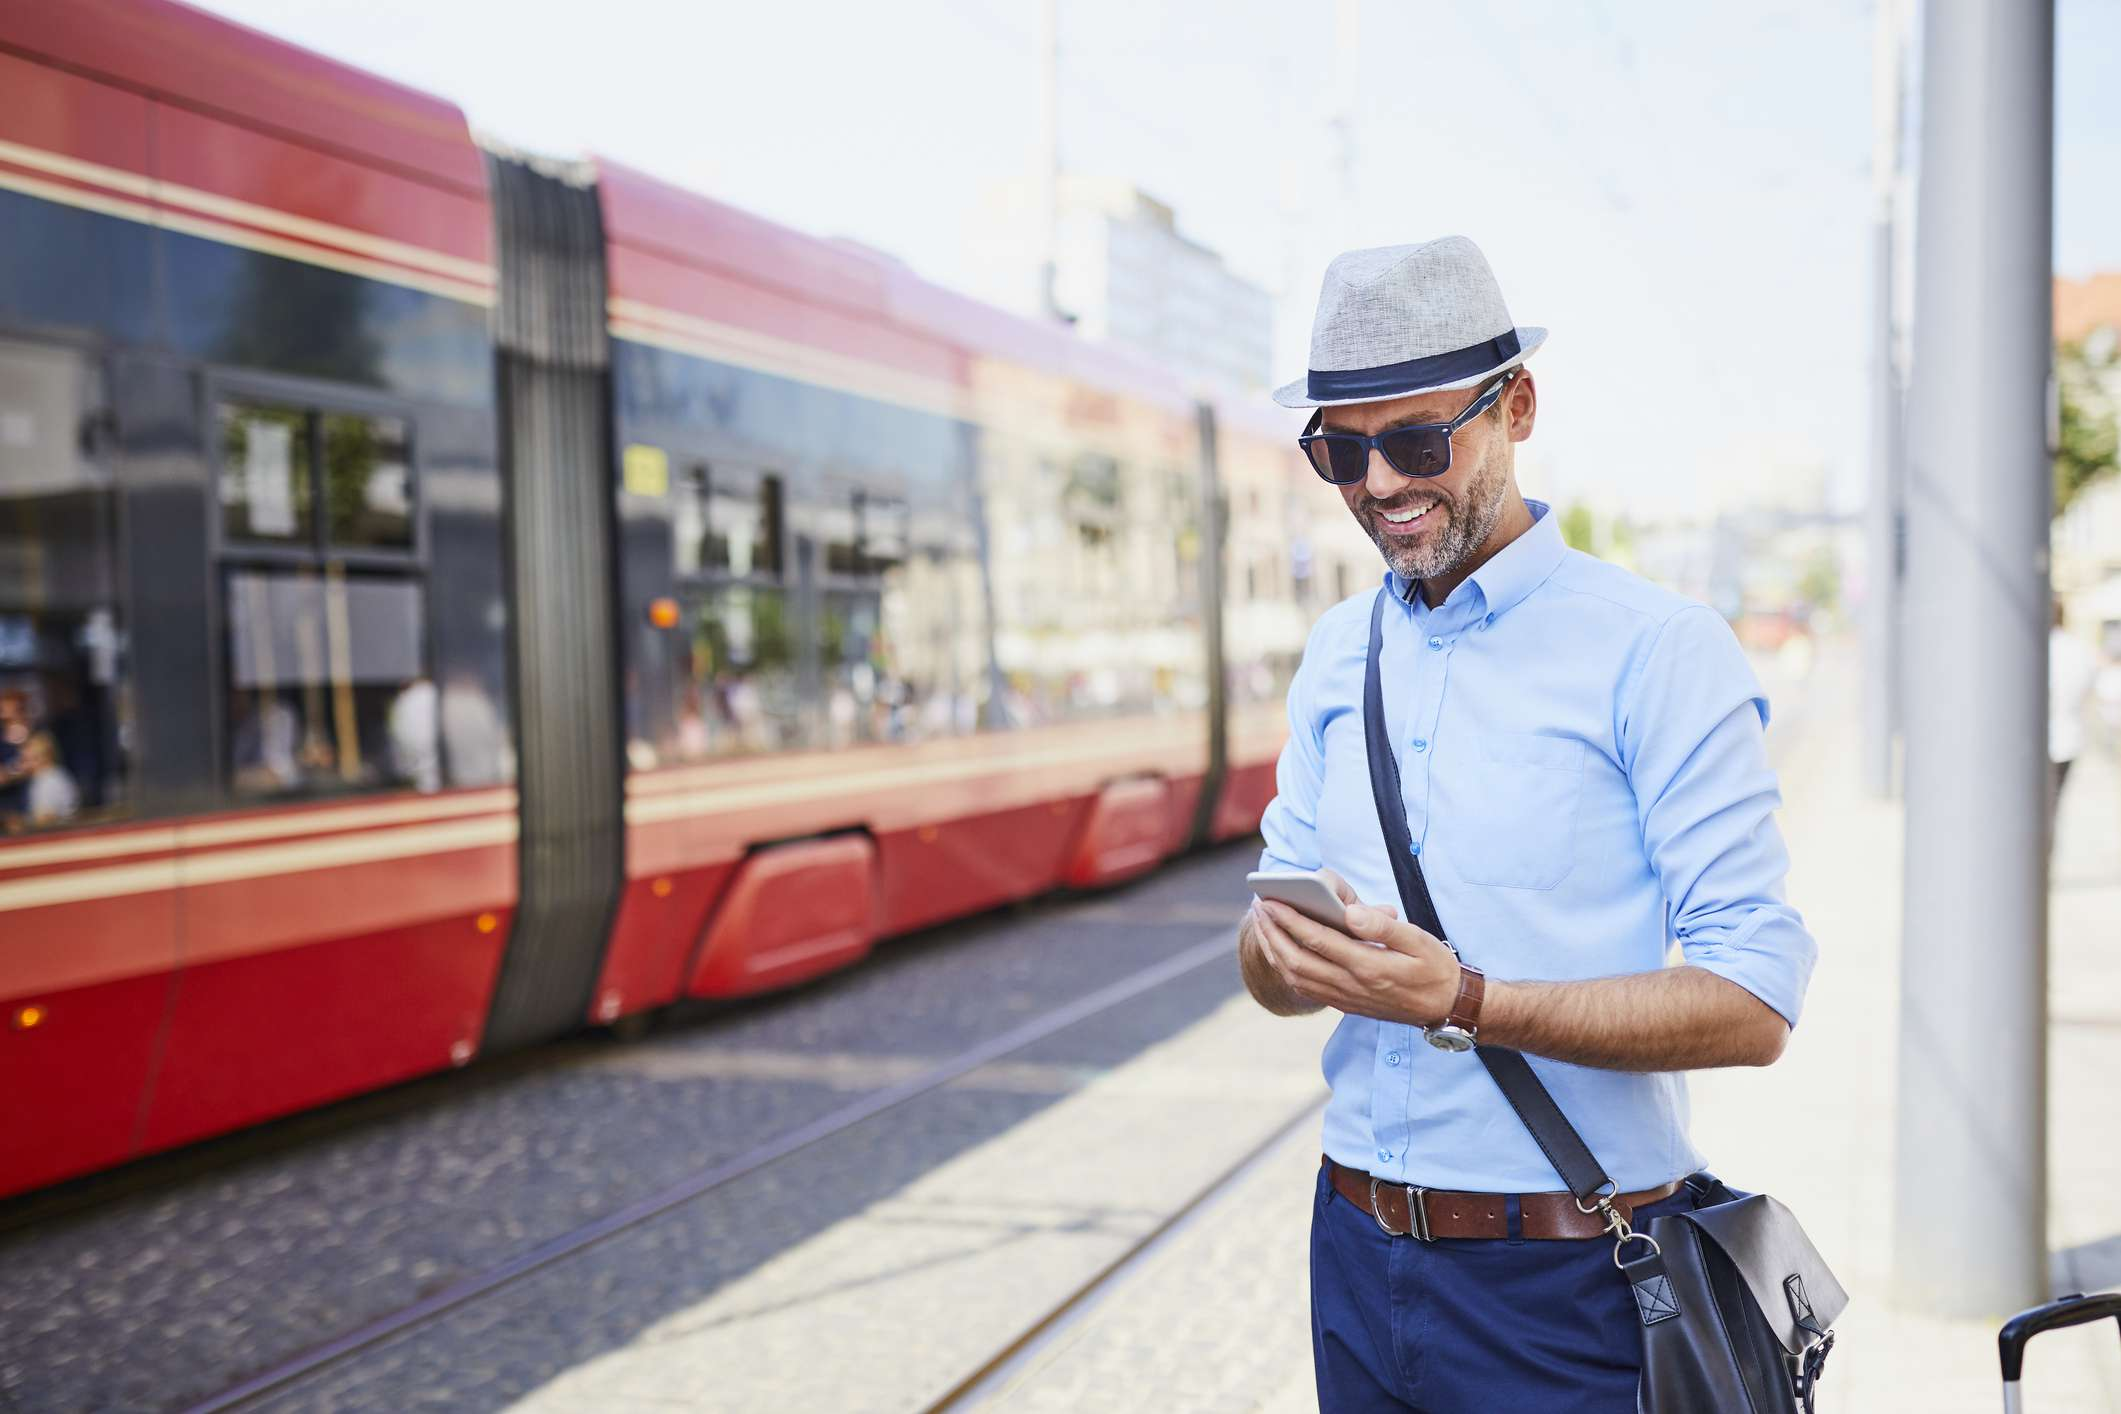 traveler purchasing gifts on the go